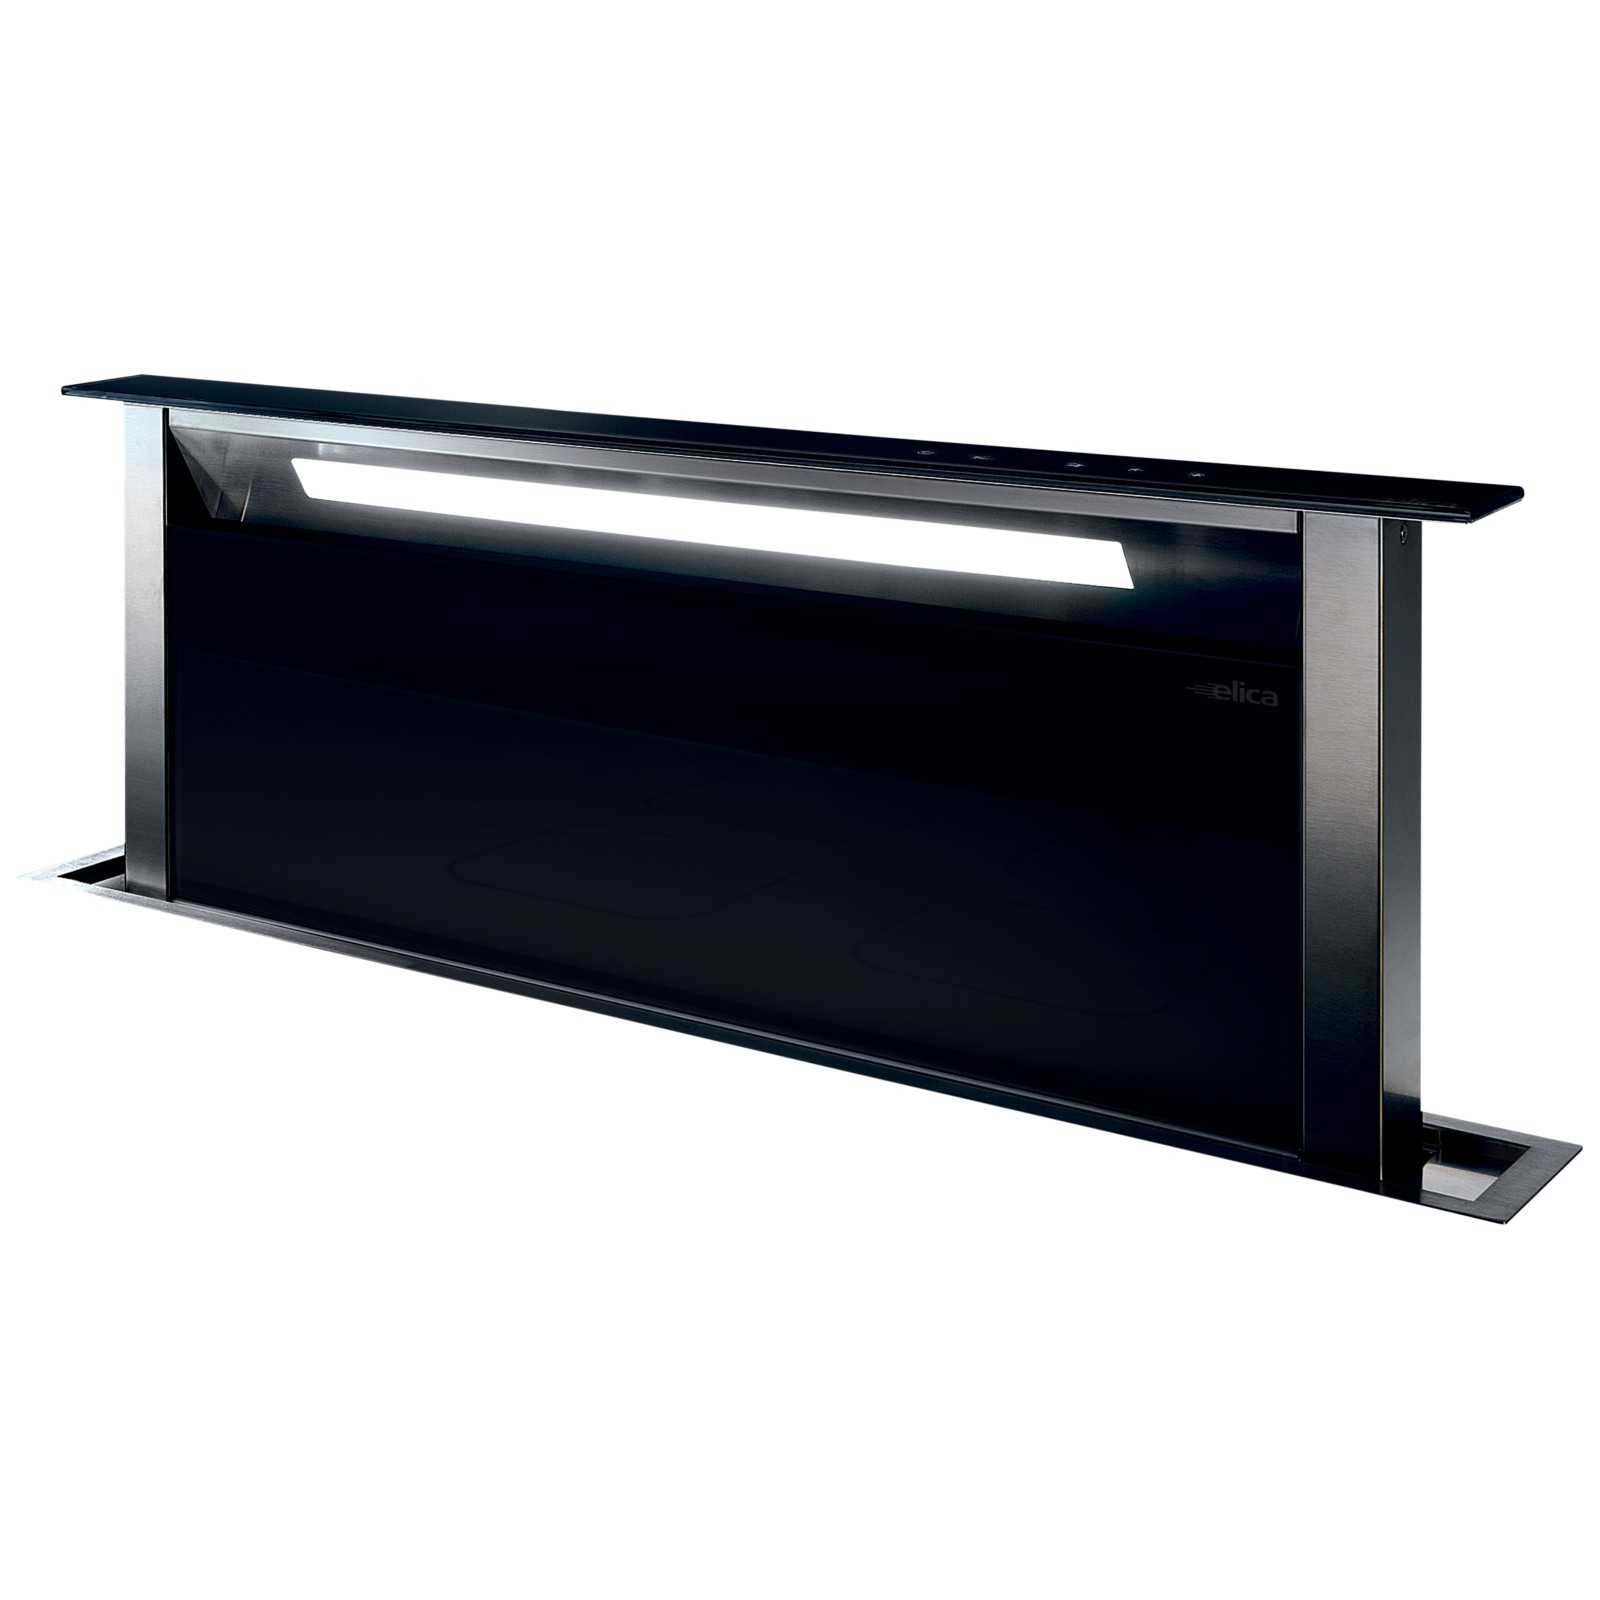 Elica Andante Downdraft Cooker Hood